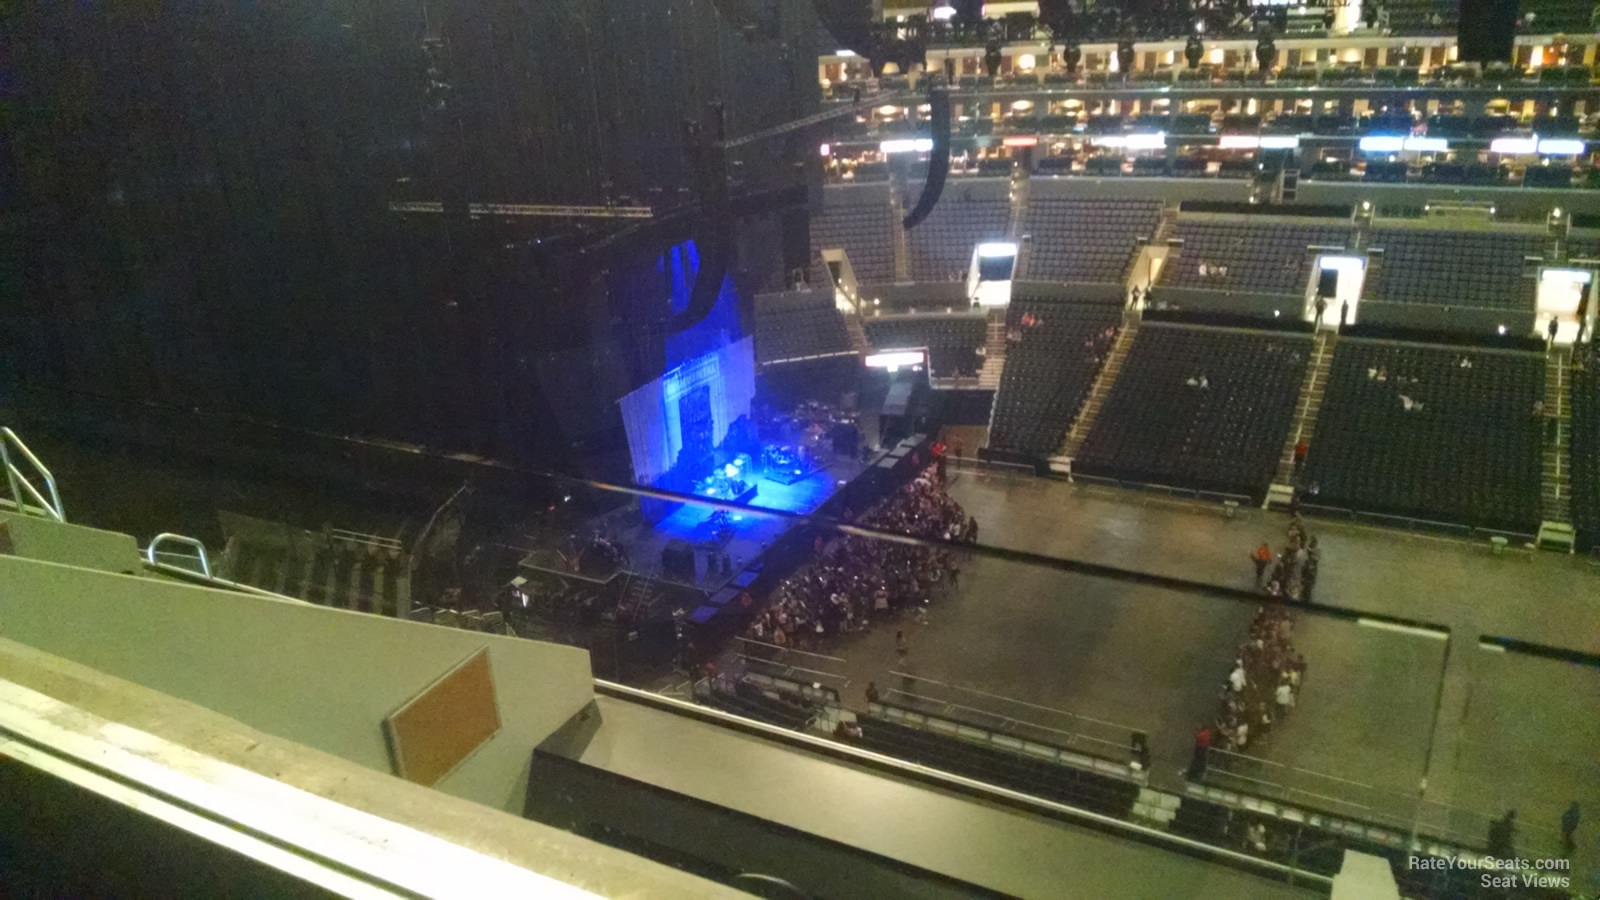 Staples Center Section 318 Concert Seating - RateYourSeats.com